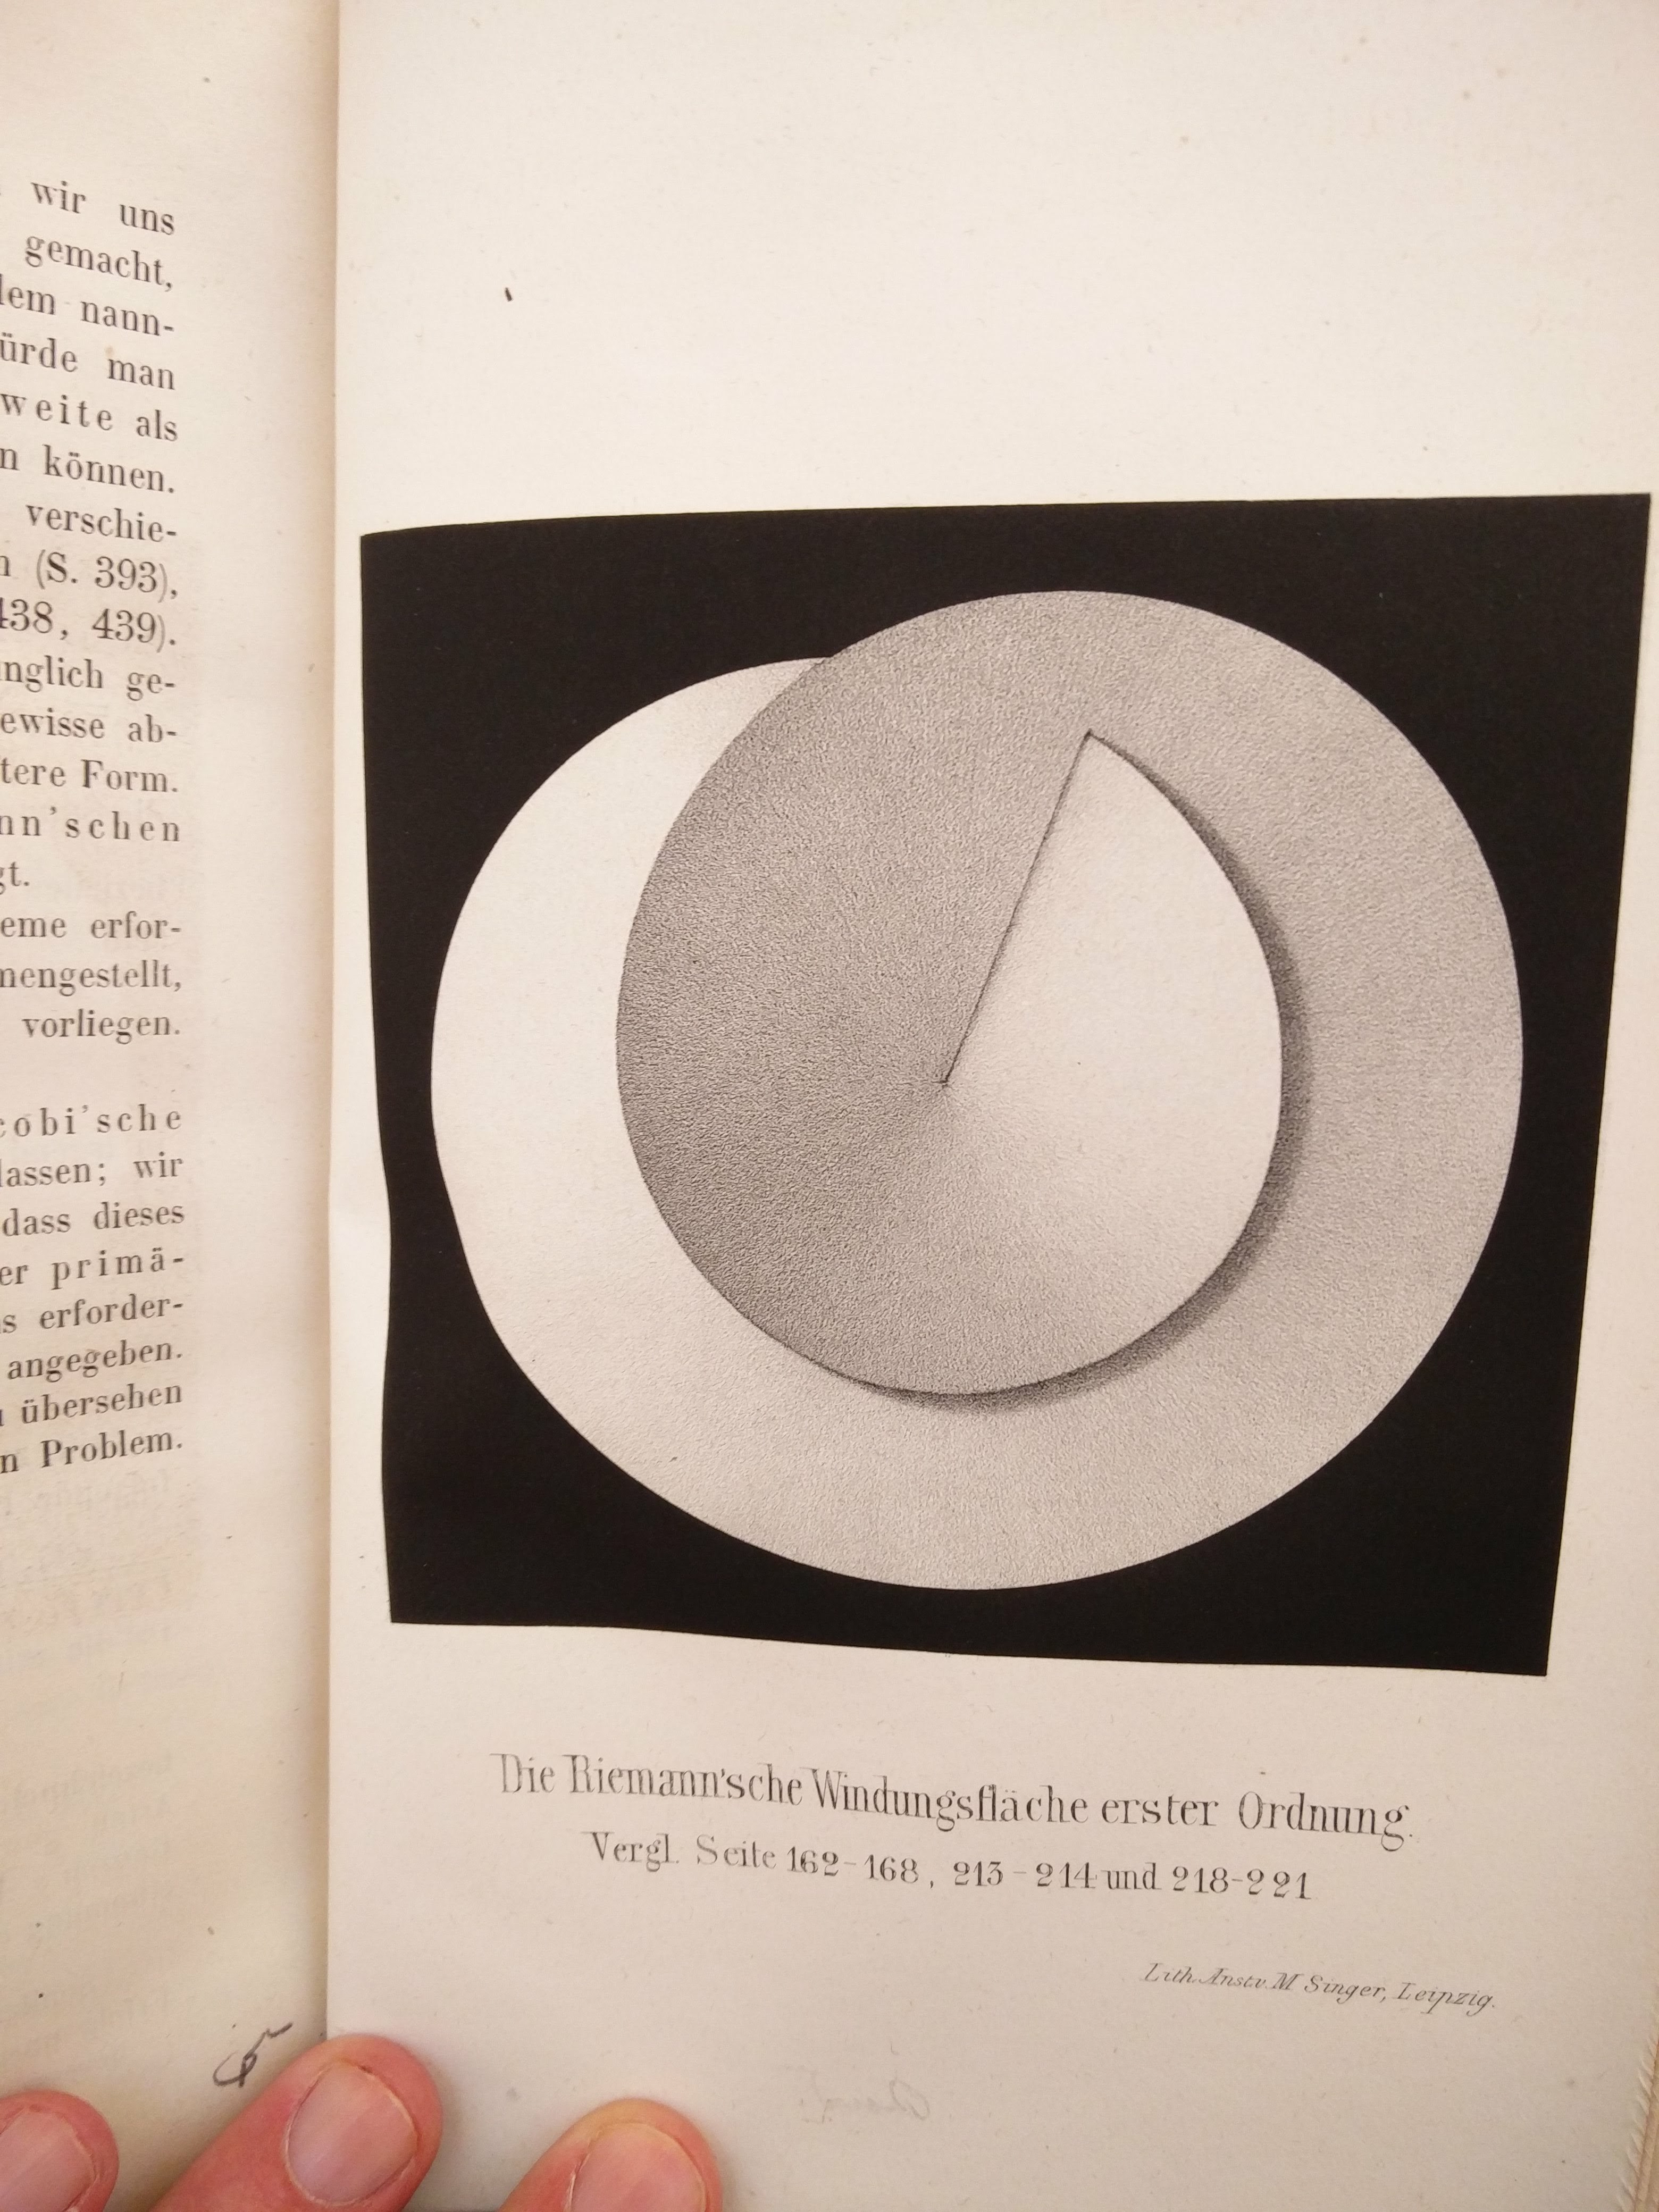 """Daryl's favourite find of the week, the last leaf of Neumann's work on Bernhard Reimann's theories (1865, Leipzig – Bodleian RSL 1822 d.101) being a lithograph of an artist's depiction of a Reimann Surface – almost popping off the page it is executed so well!"""